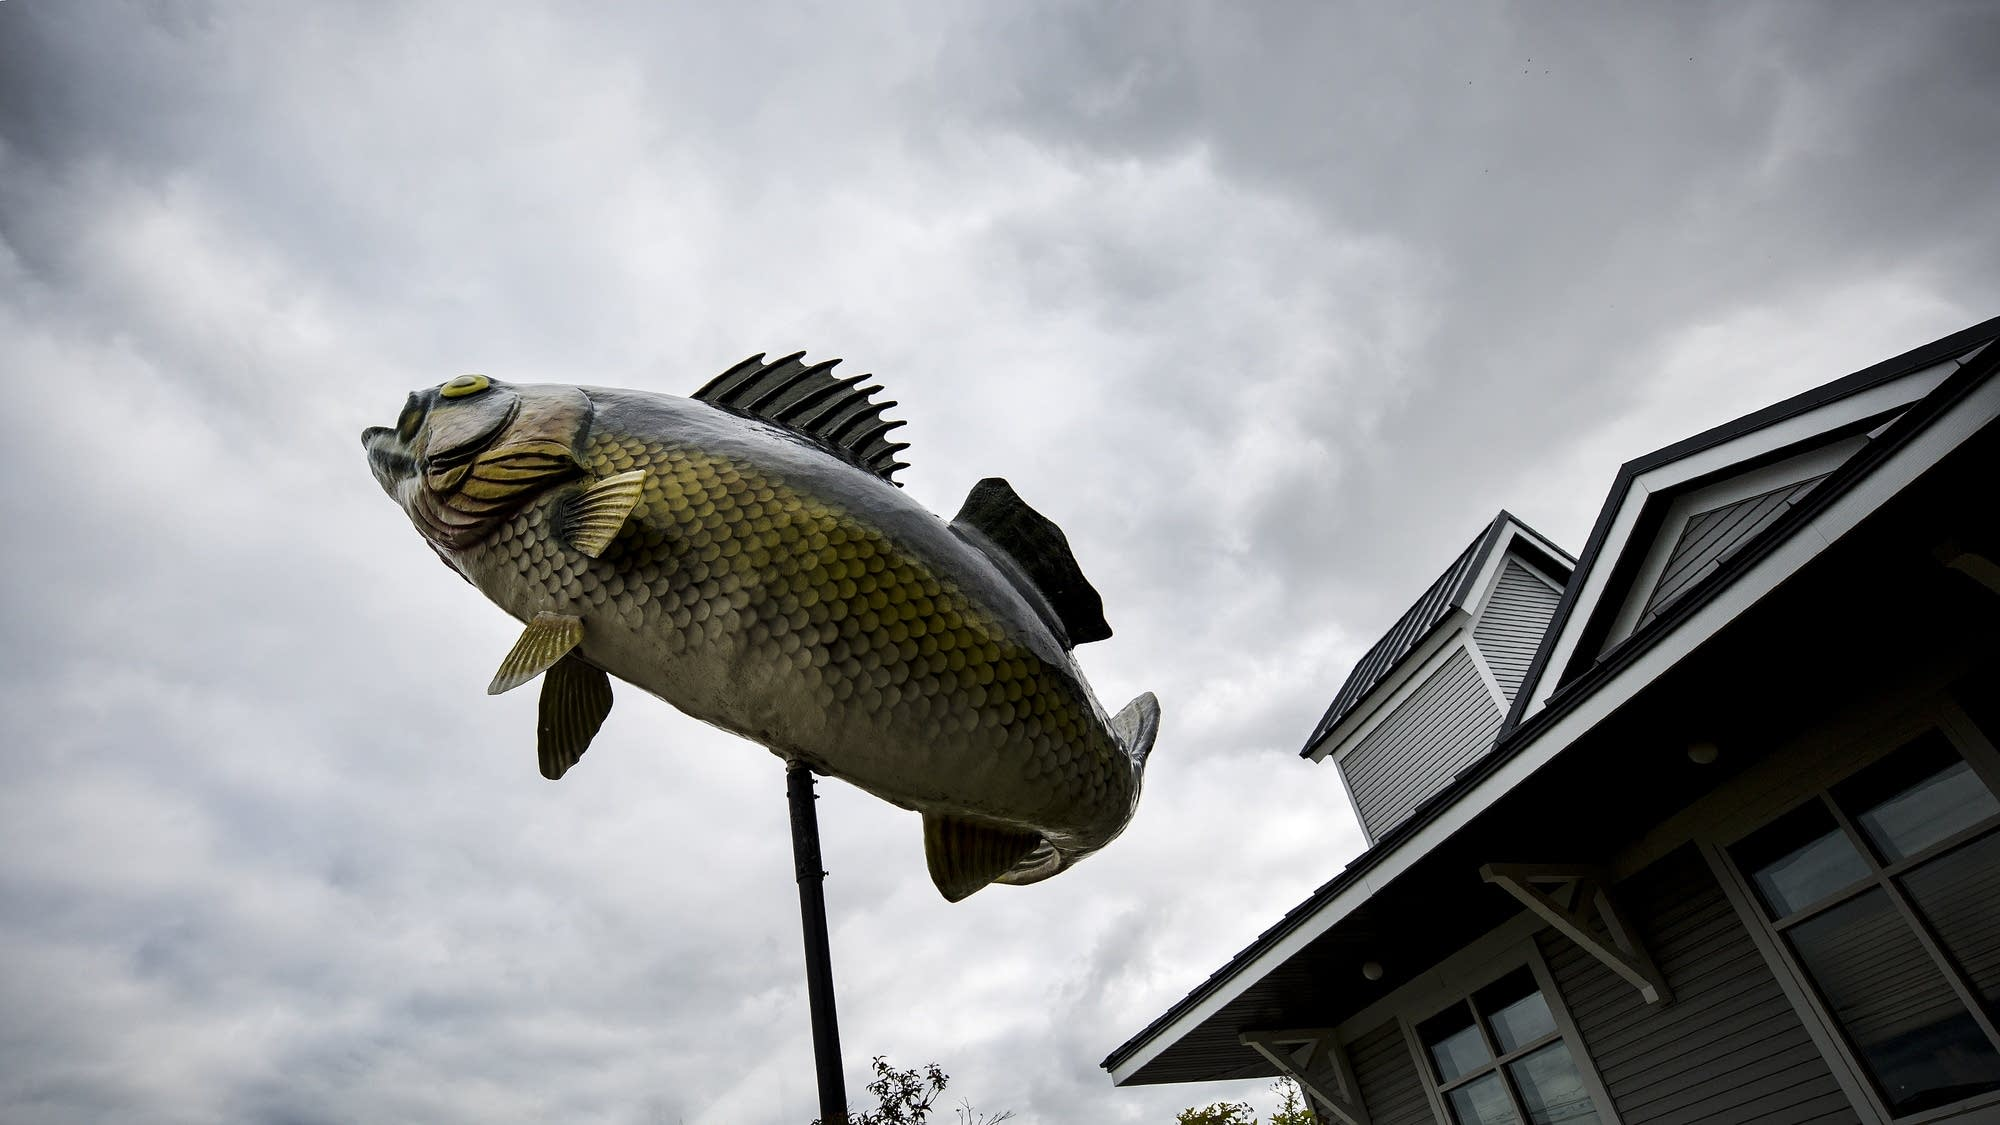 Walleye fishing is apparently good before it's banned.